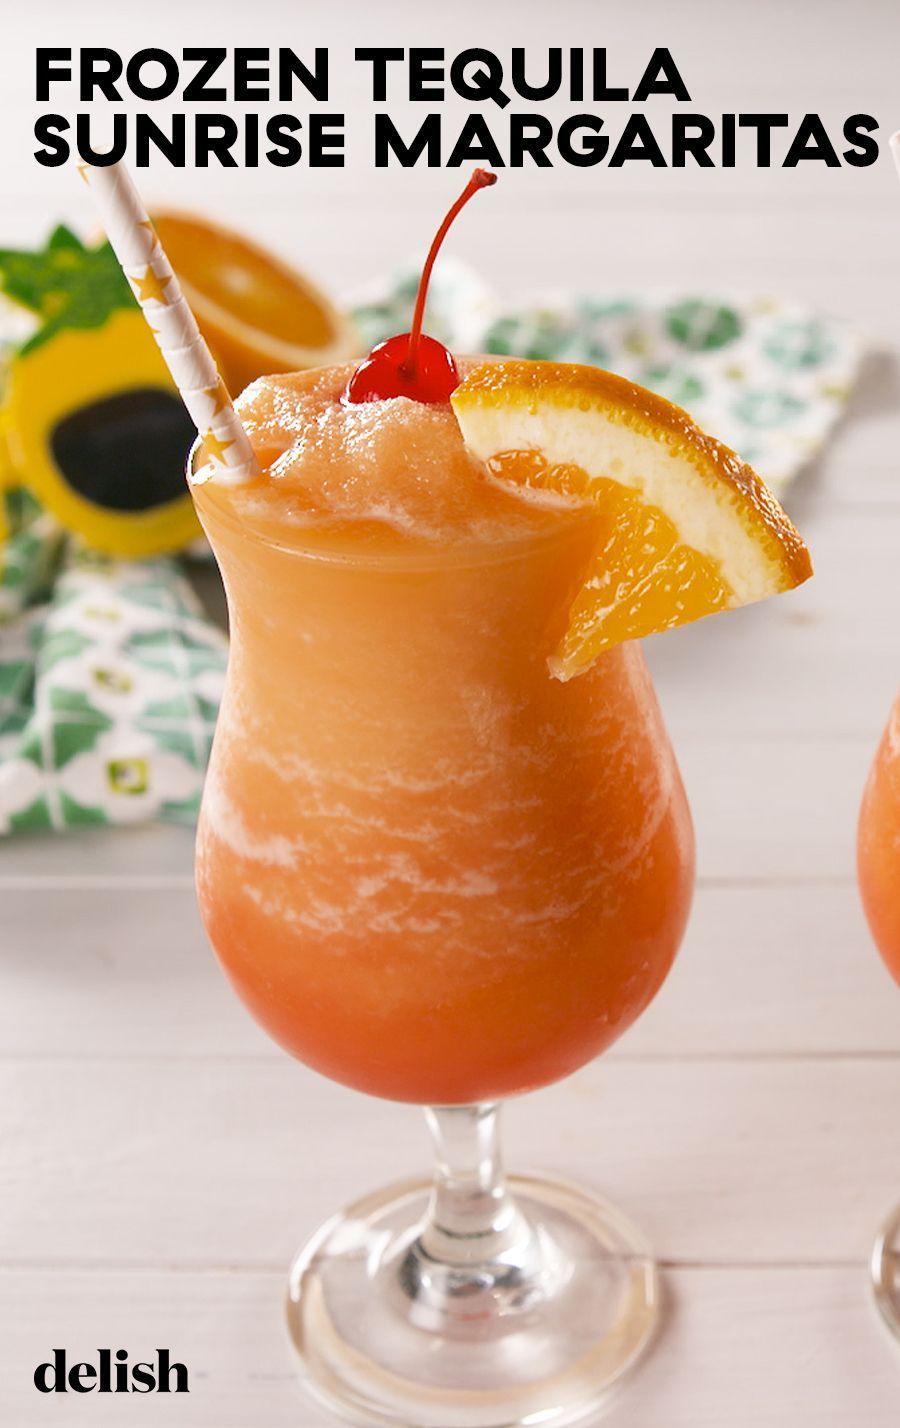 Transport Yourself To The Beach With This Frozen Tequila Sunrise Margarita